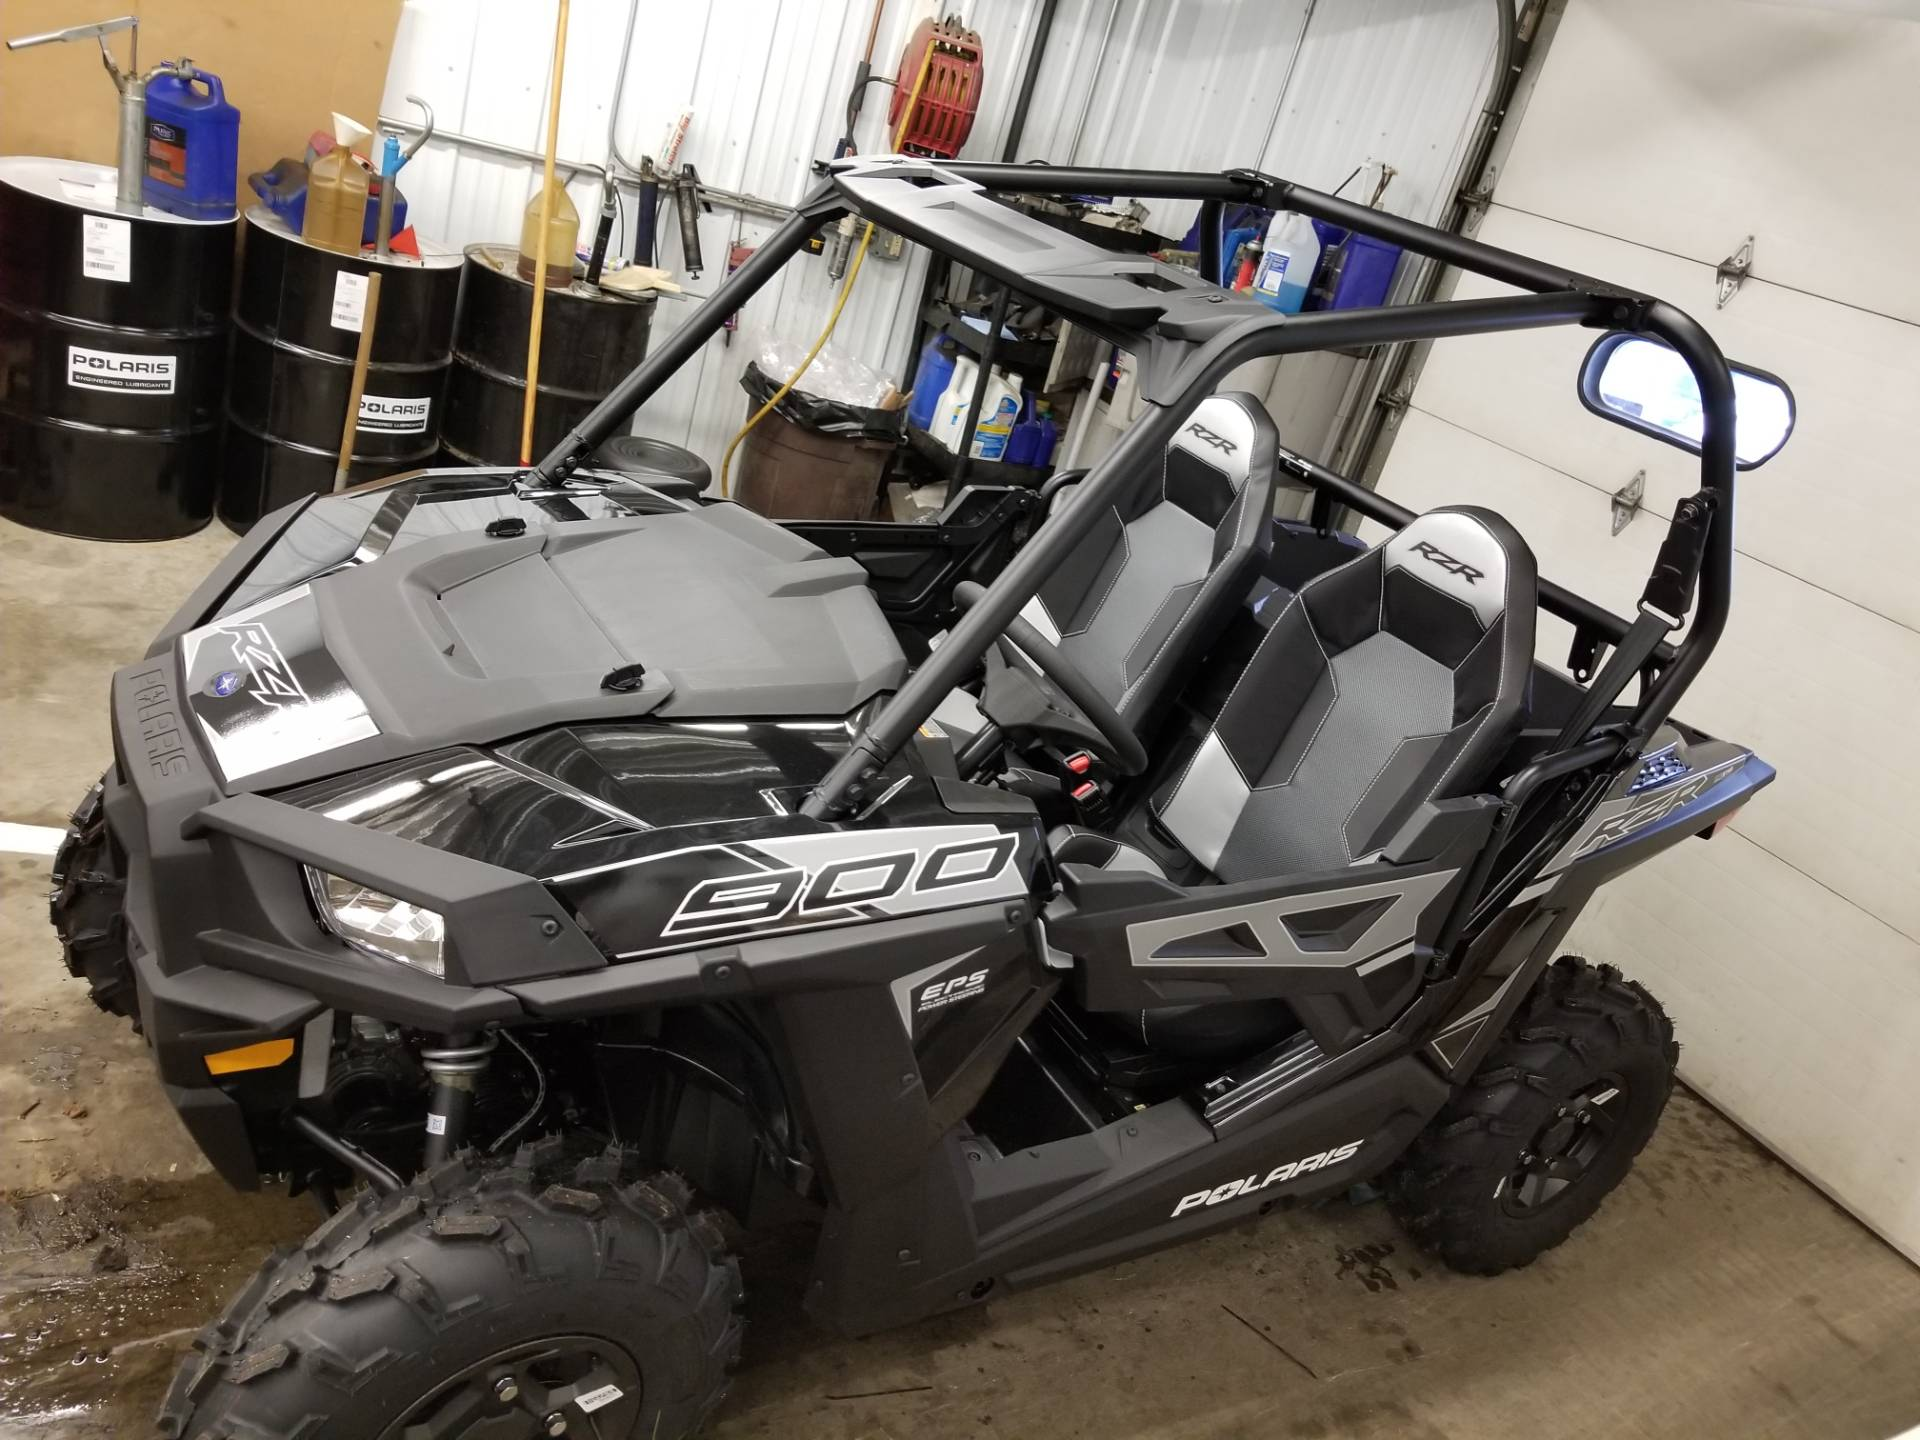 2019 Polaris RZR 900 EPS in Bigfork, Minnesota - Photo 2